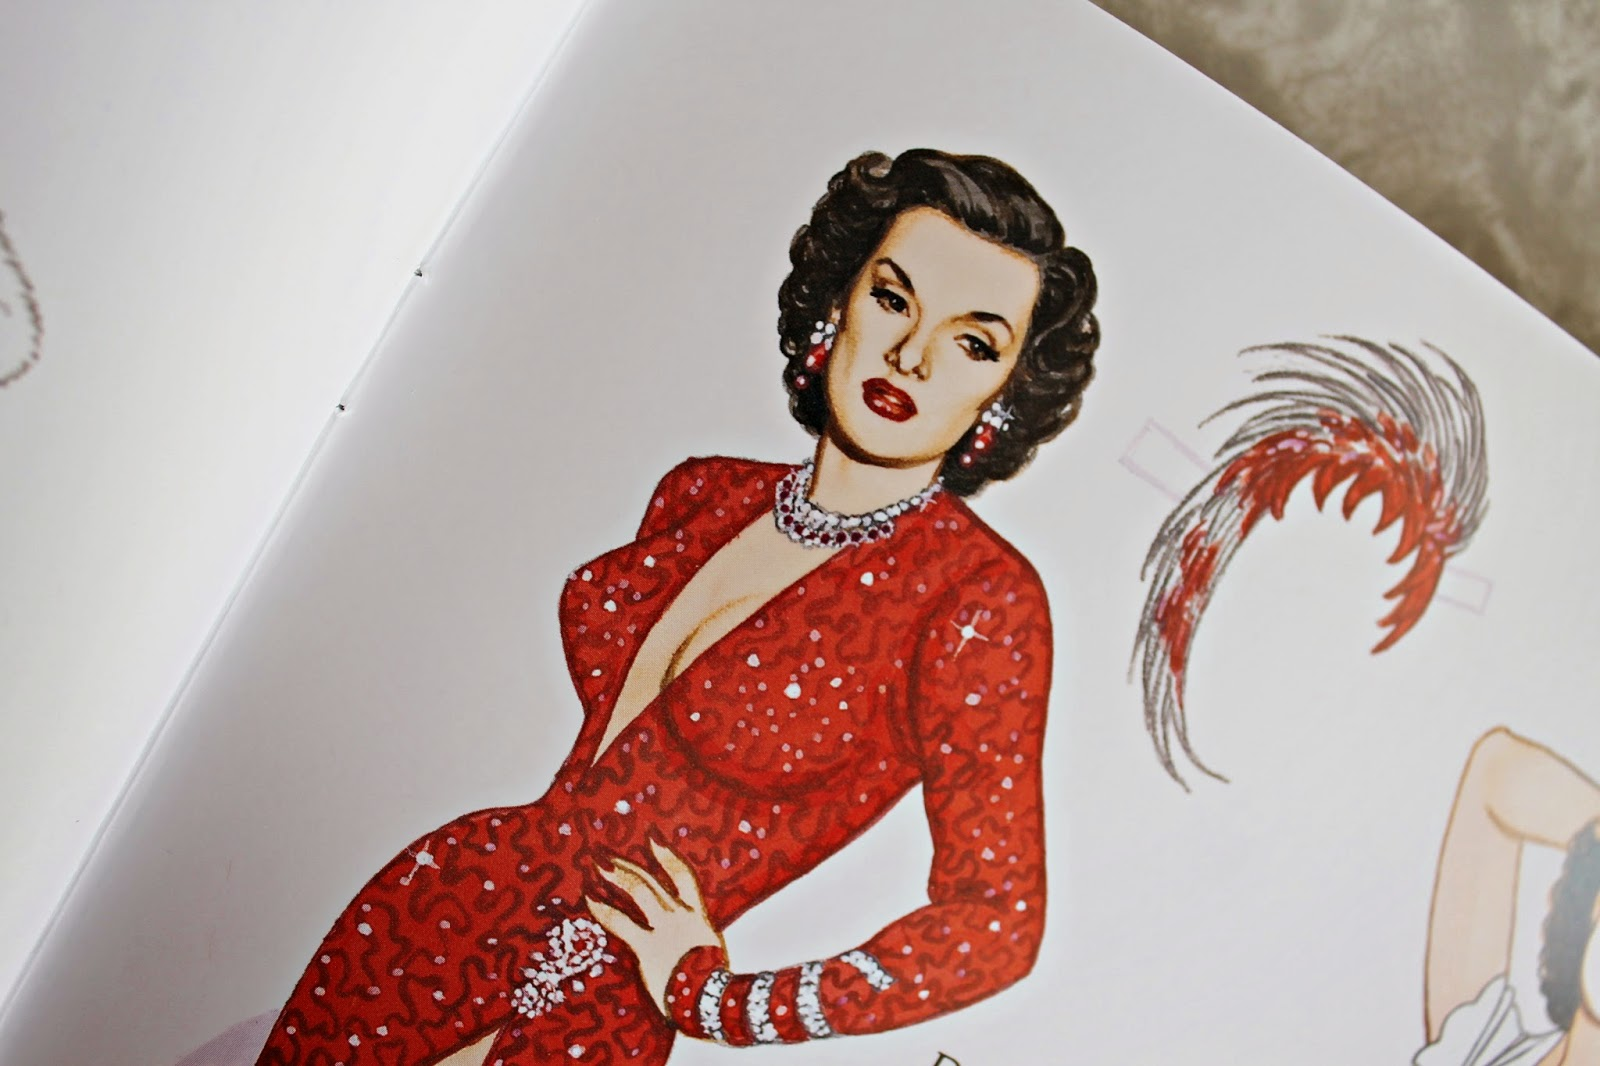 Glamorous Movie Stars of the 1950s paper dolls by Tom Tierney from Dover Publications